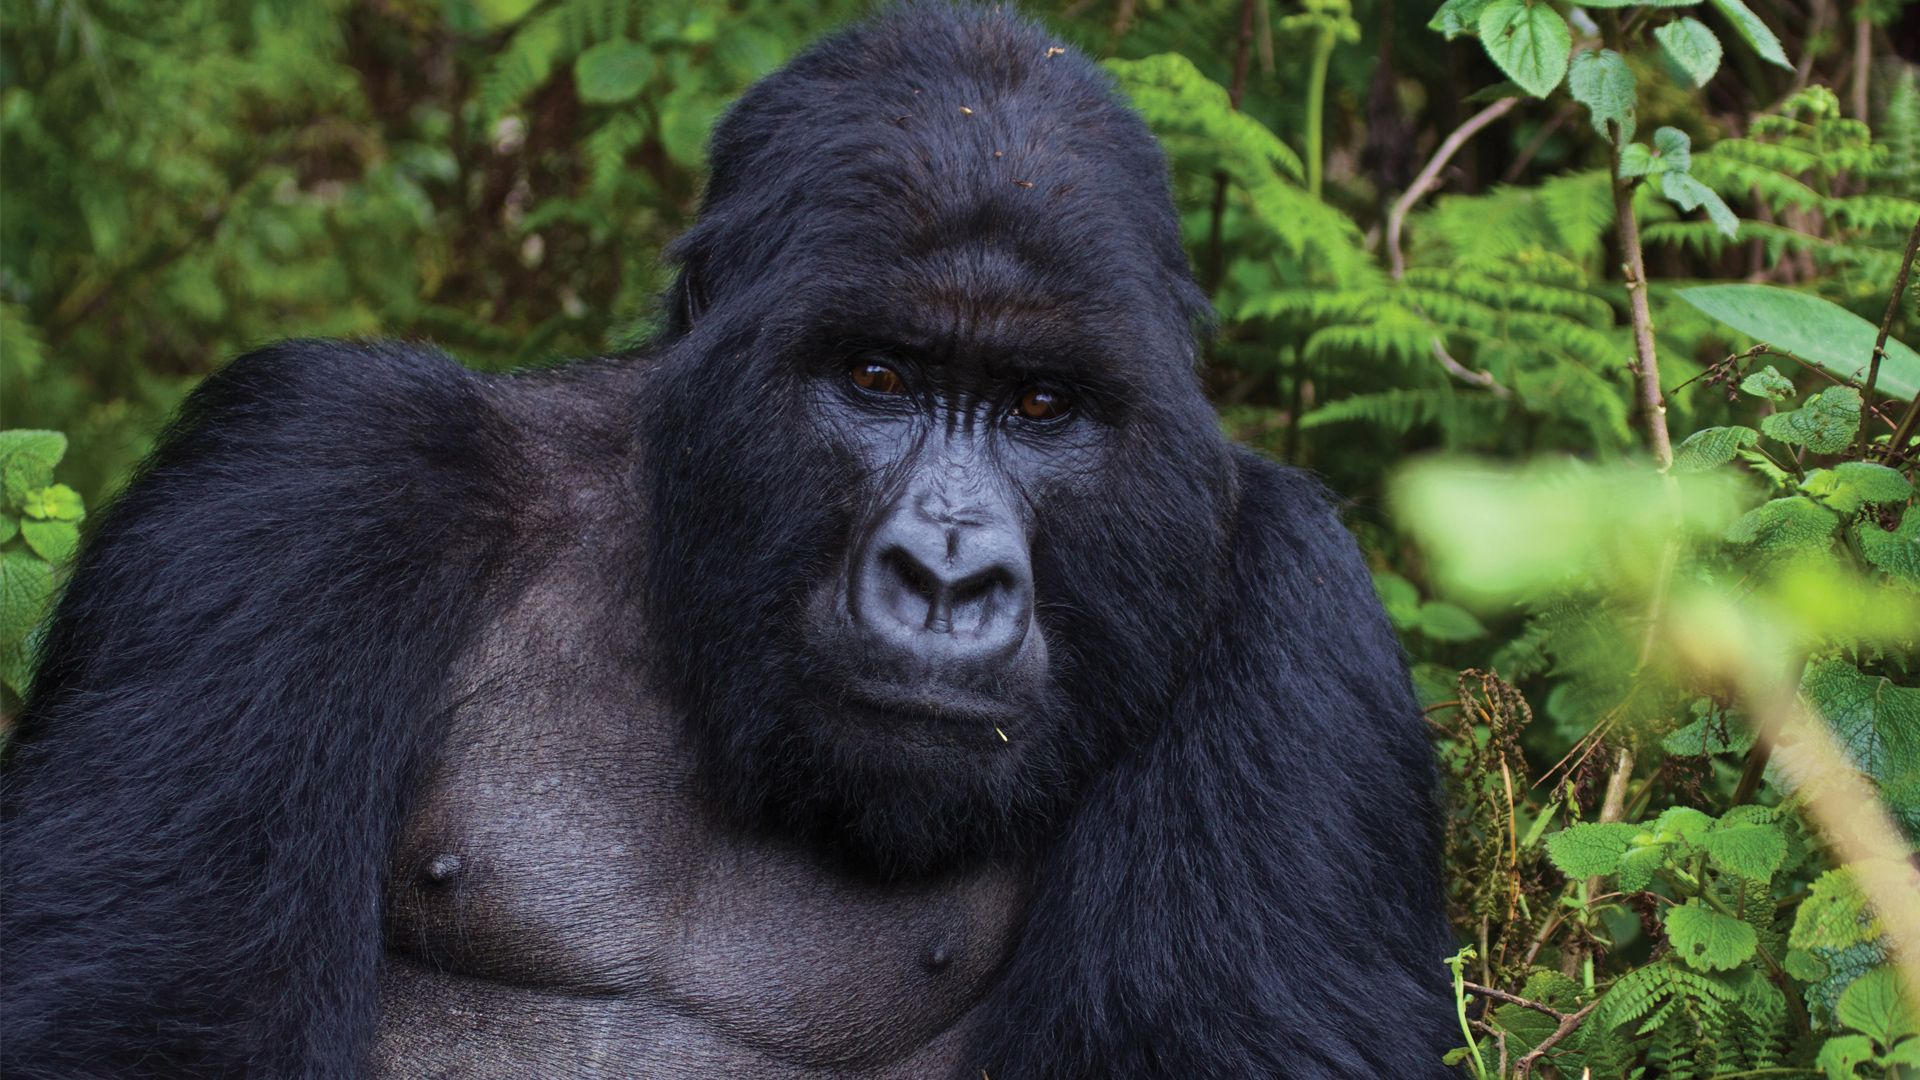 Cute Gorilla Wallpapers Full Hd Gorilla Photos And Wallpapers 1080p 1080p